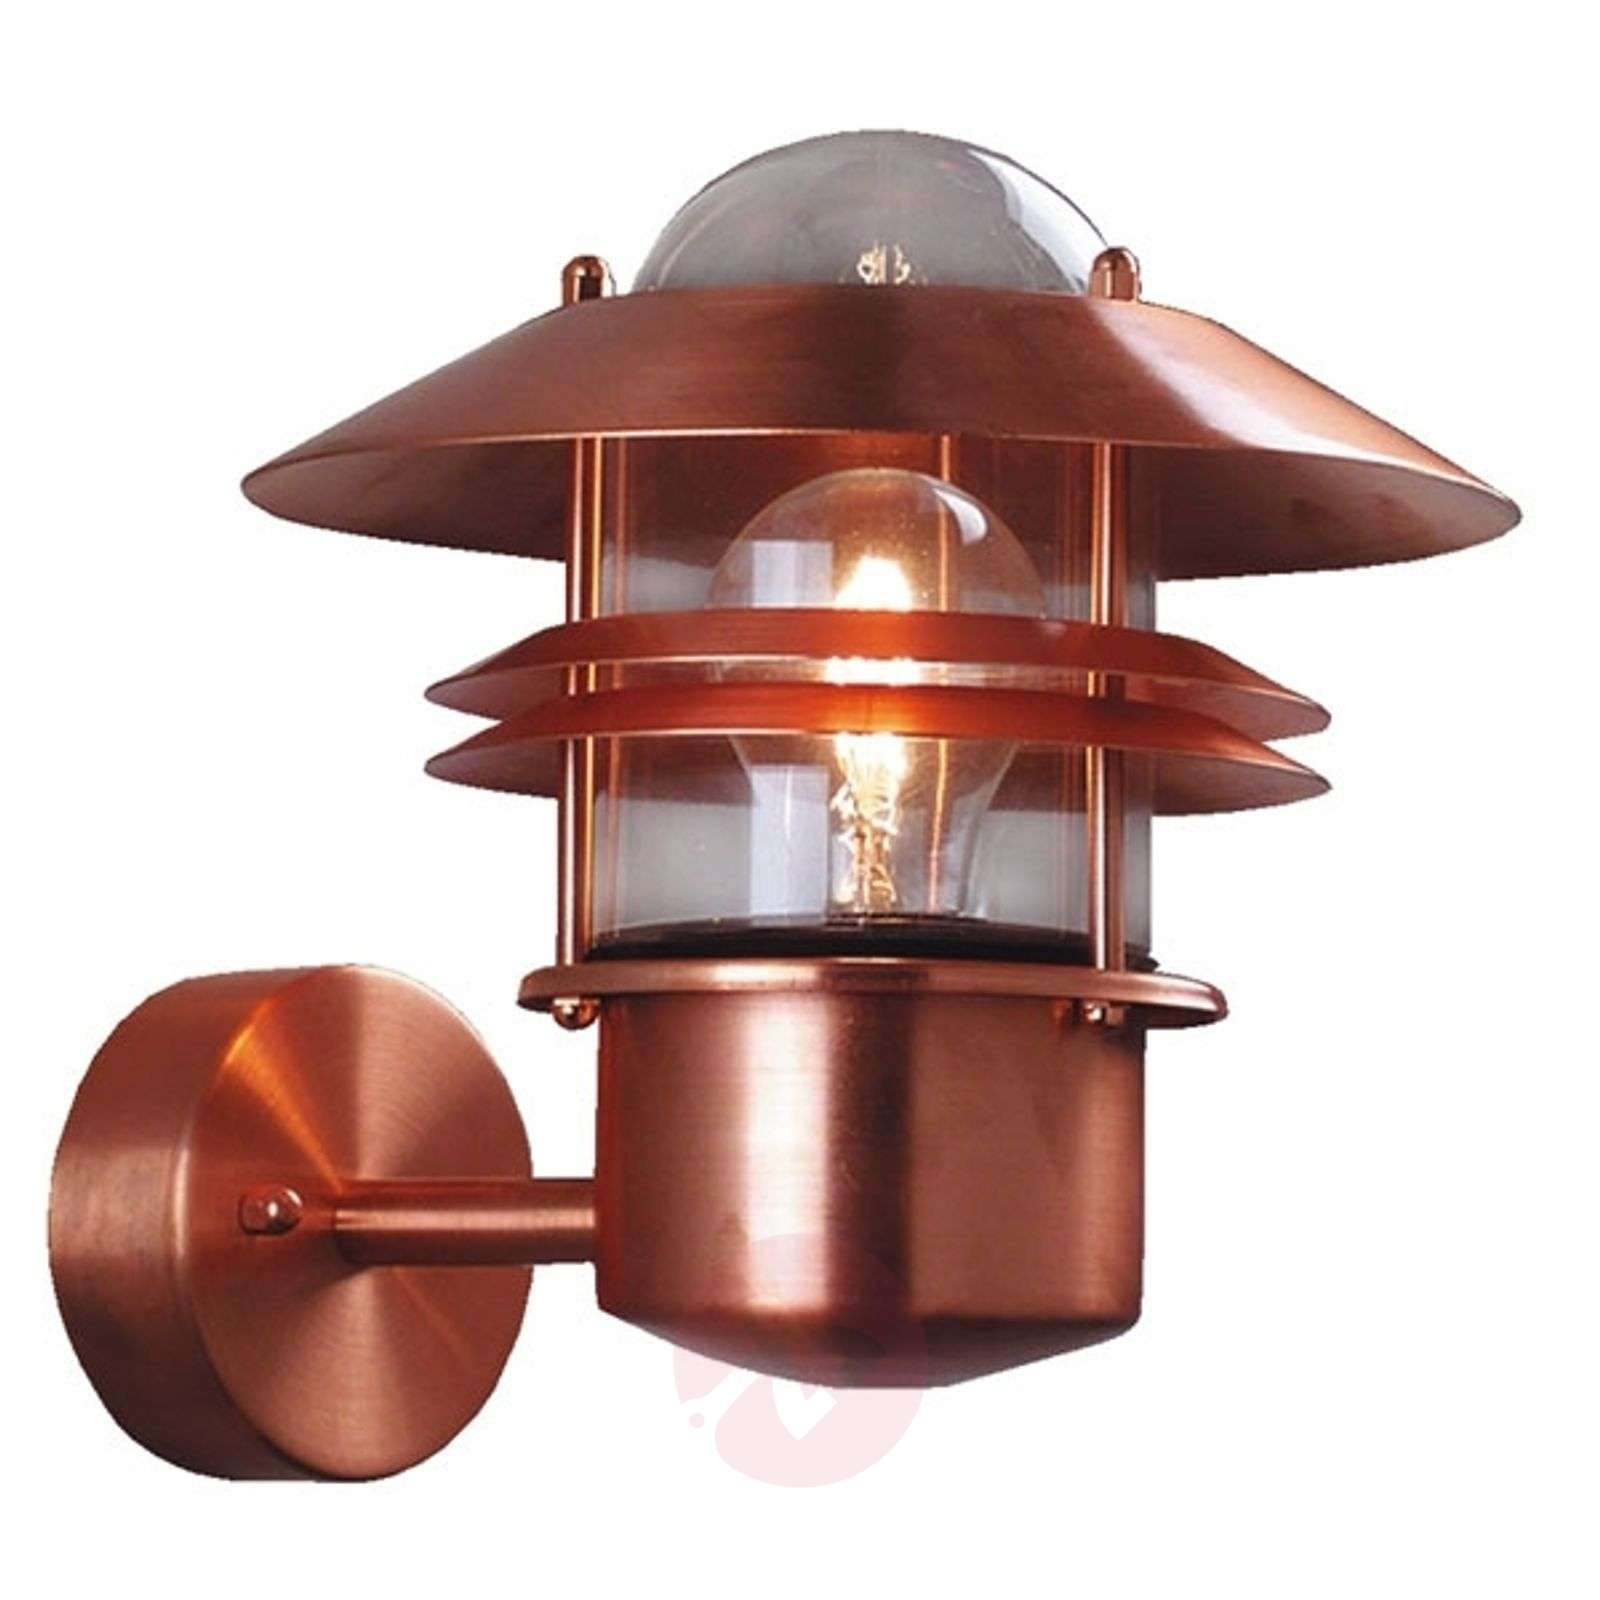 Blokhus outdoor wall lamp in copper-7005100-01